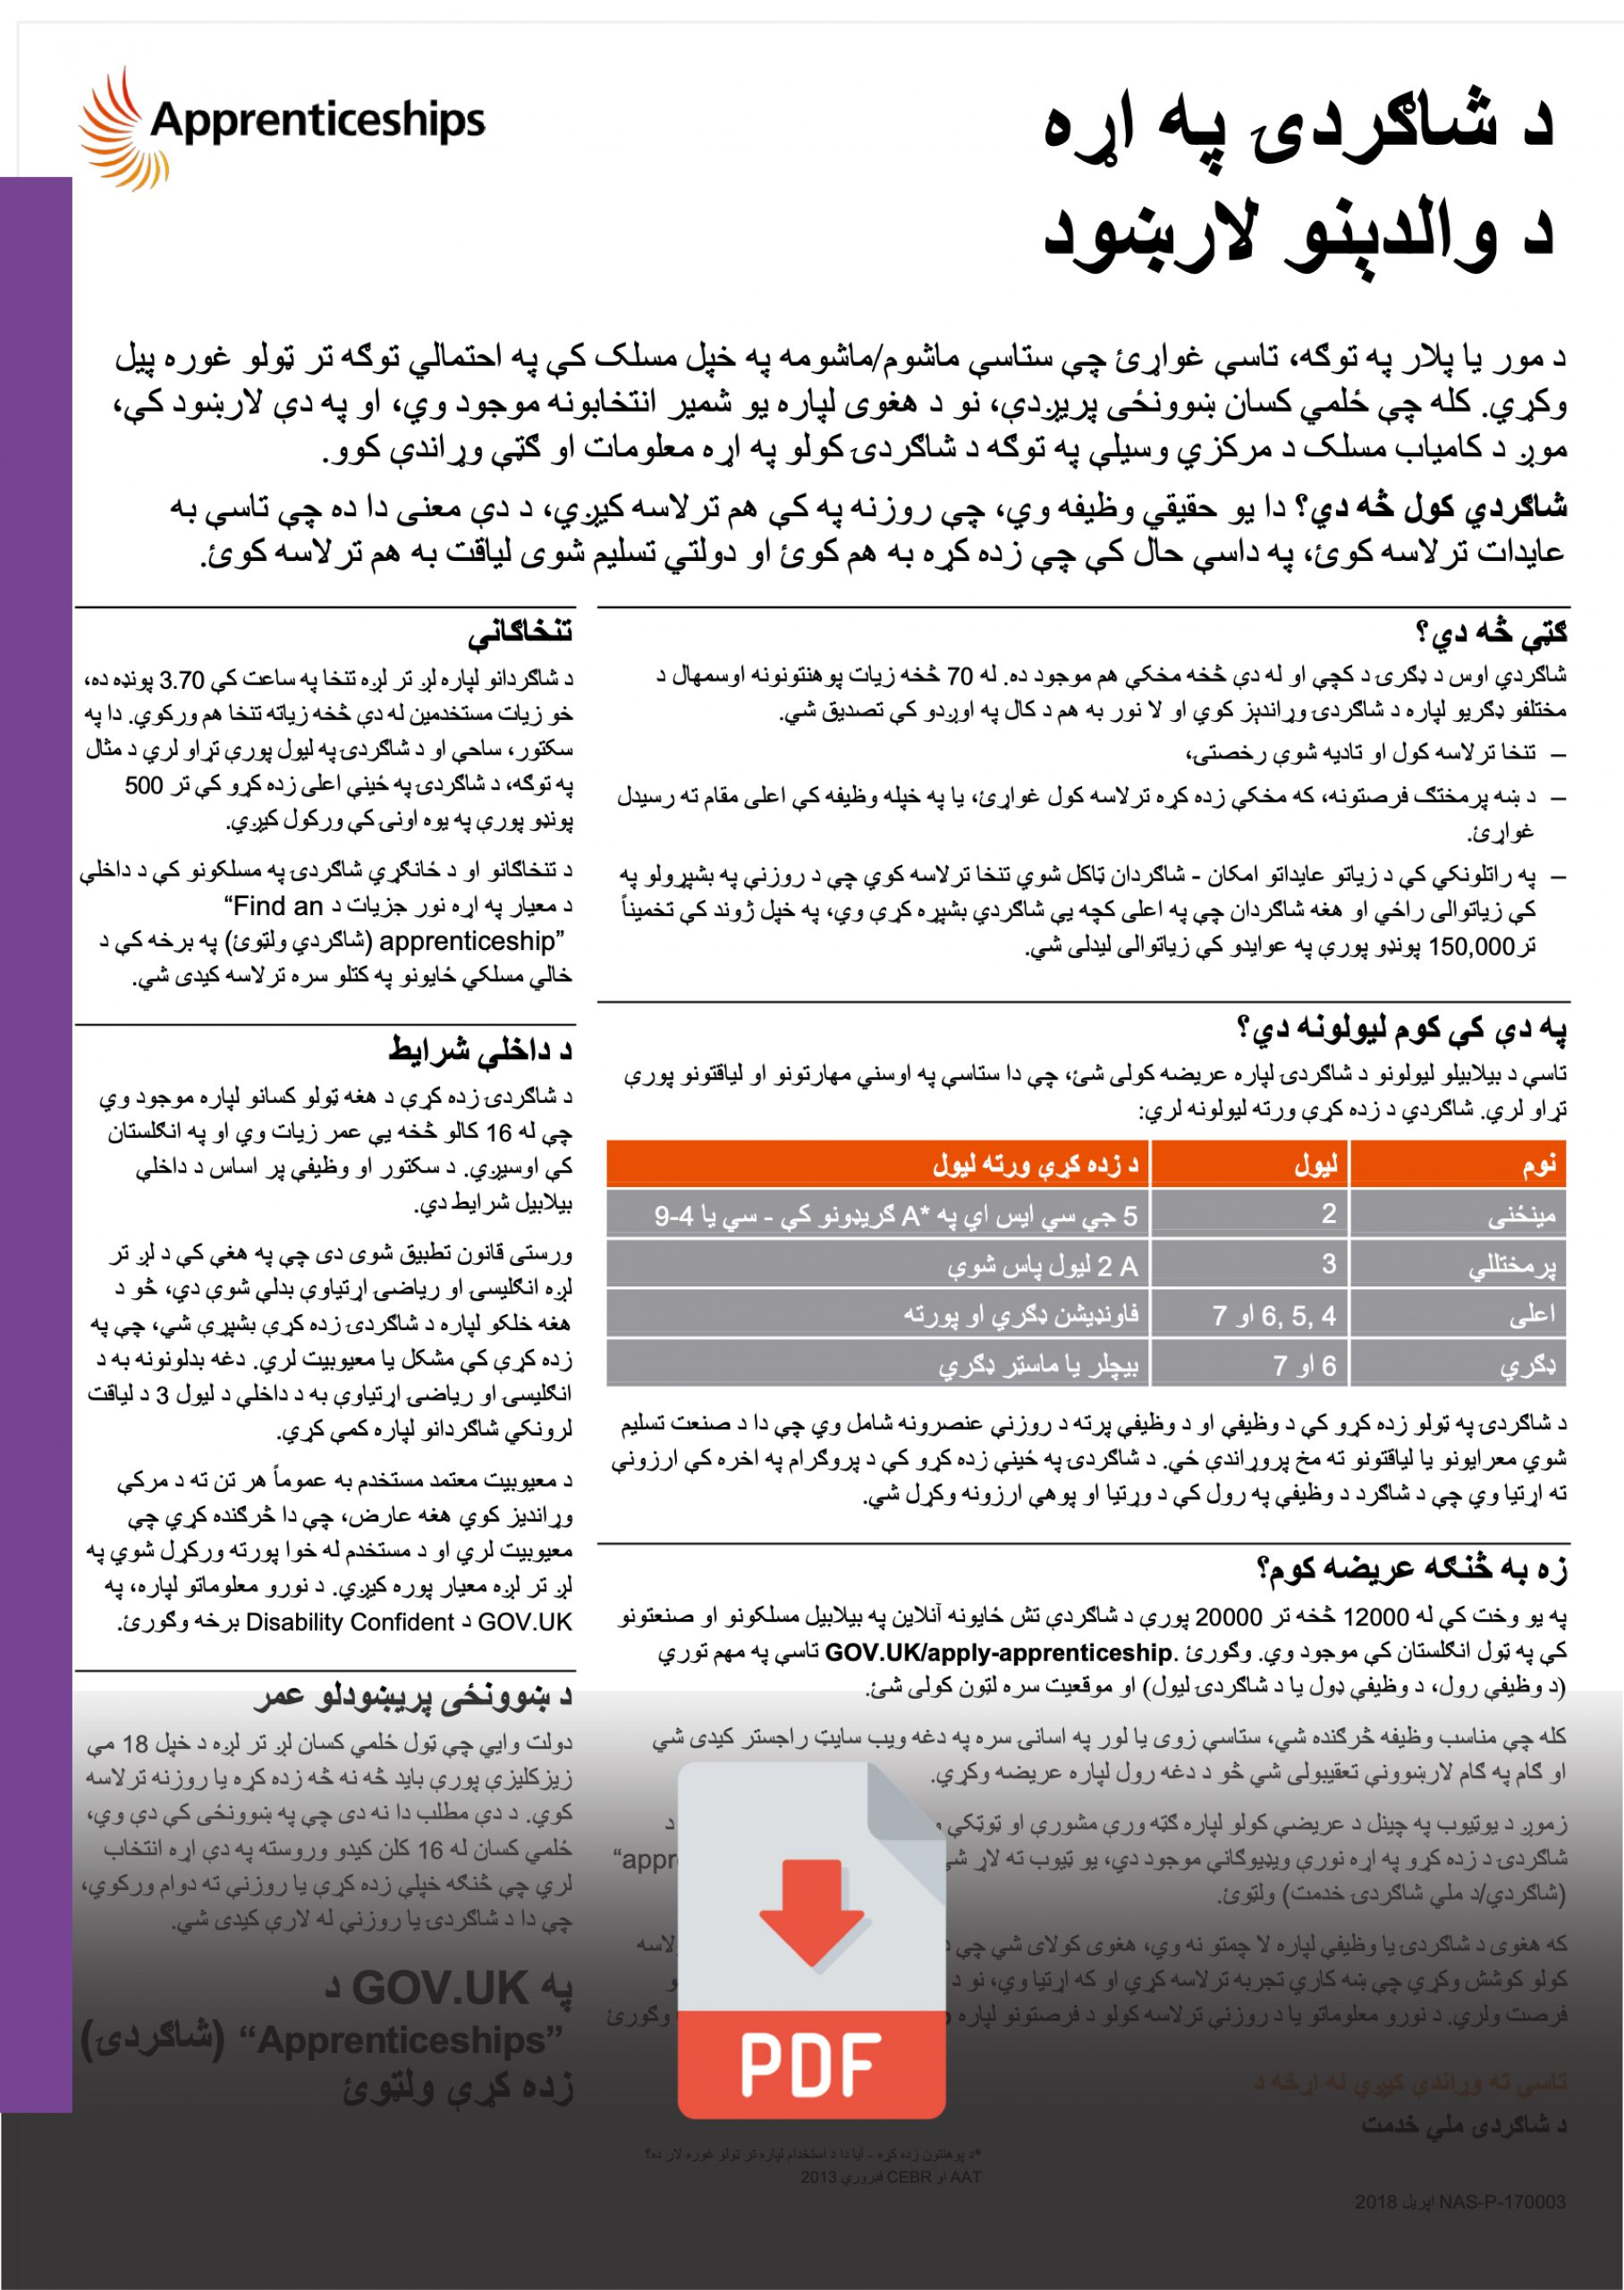 Pashto - Parents Guide to Apprenticeships